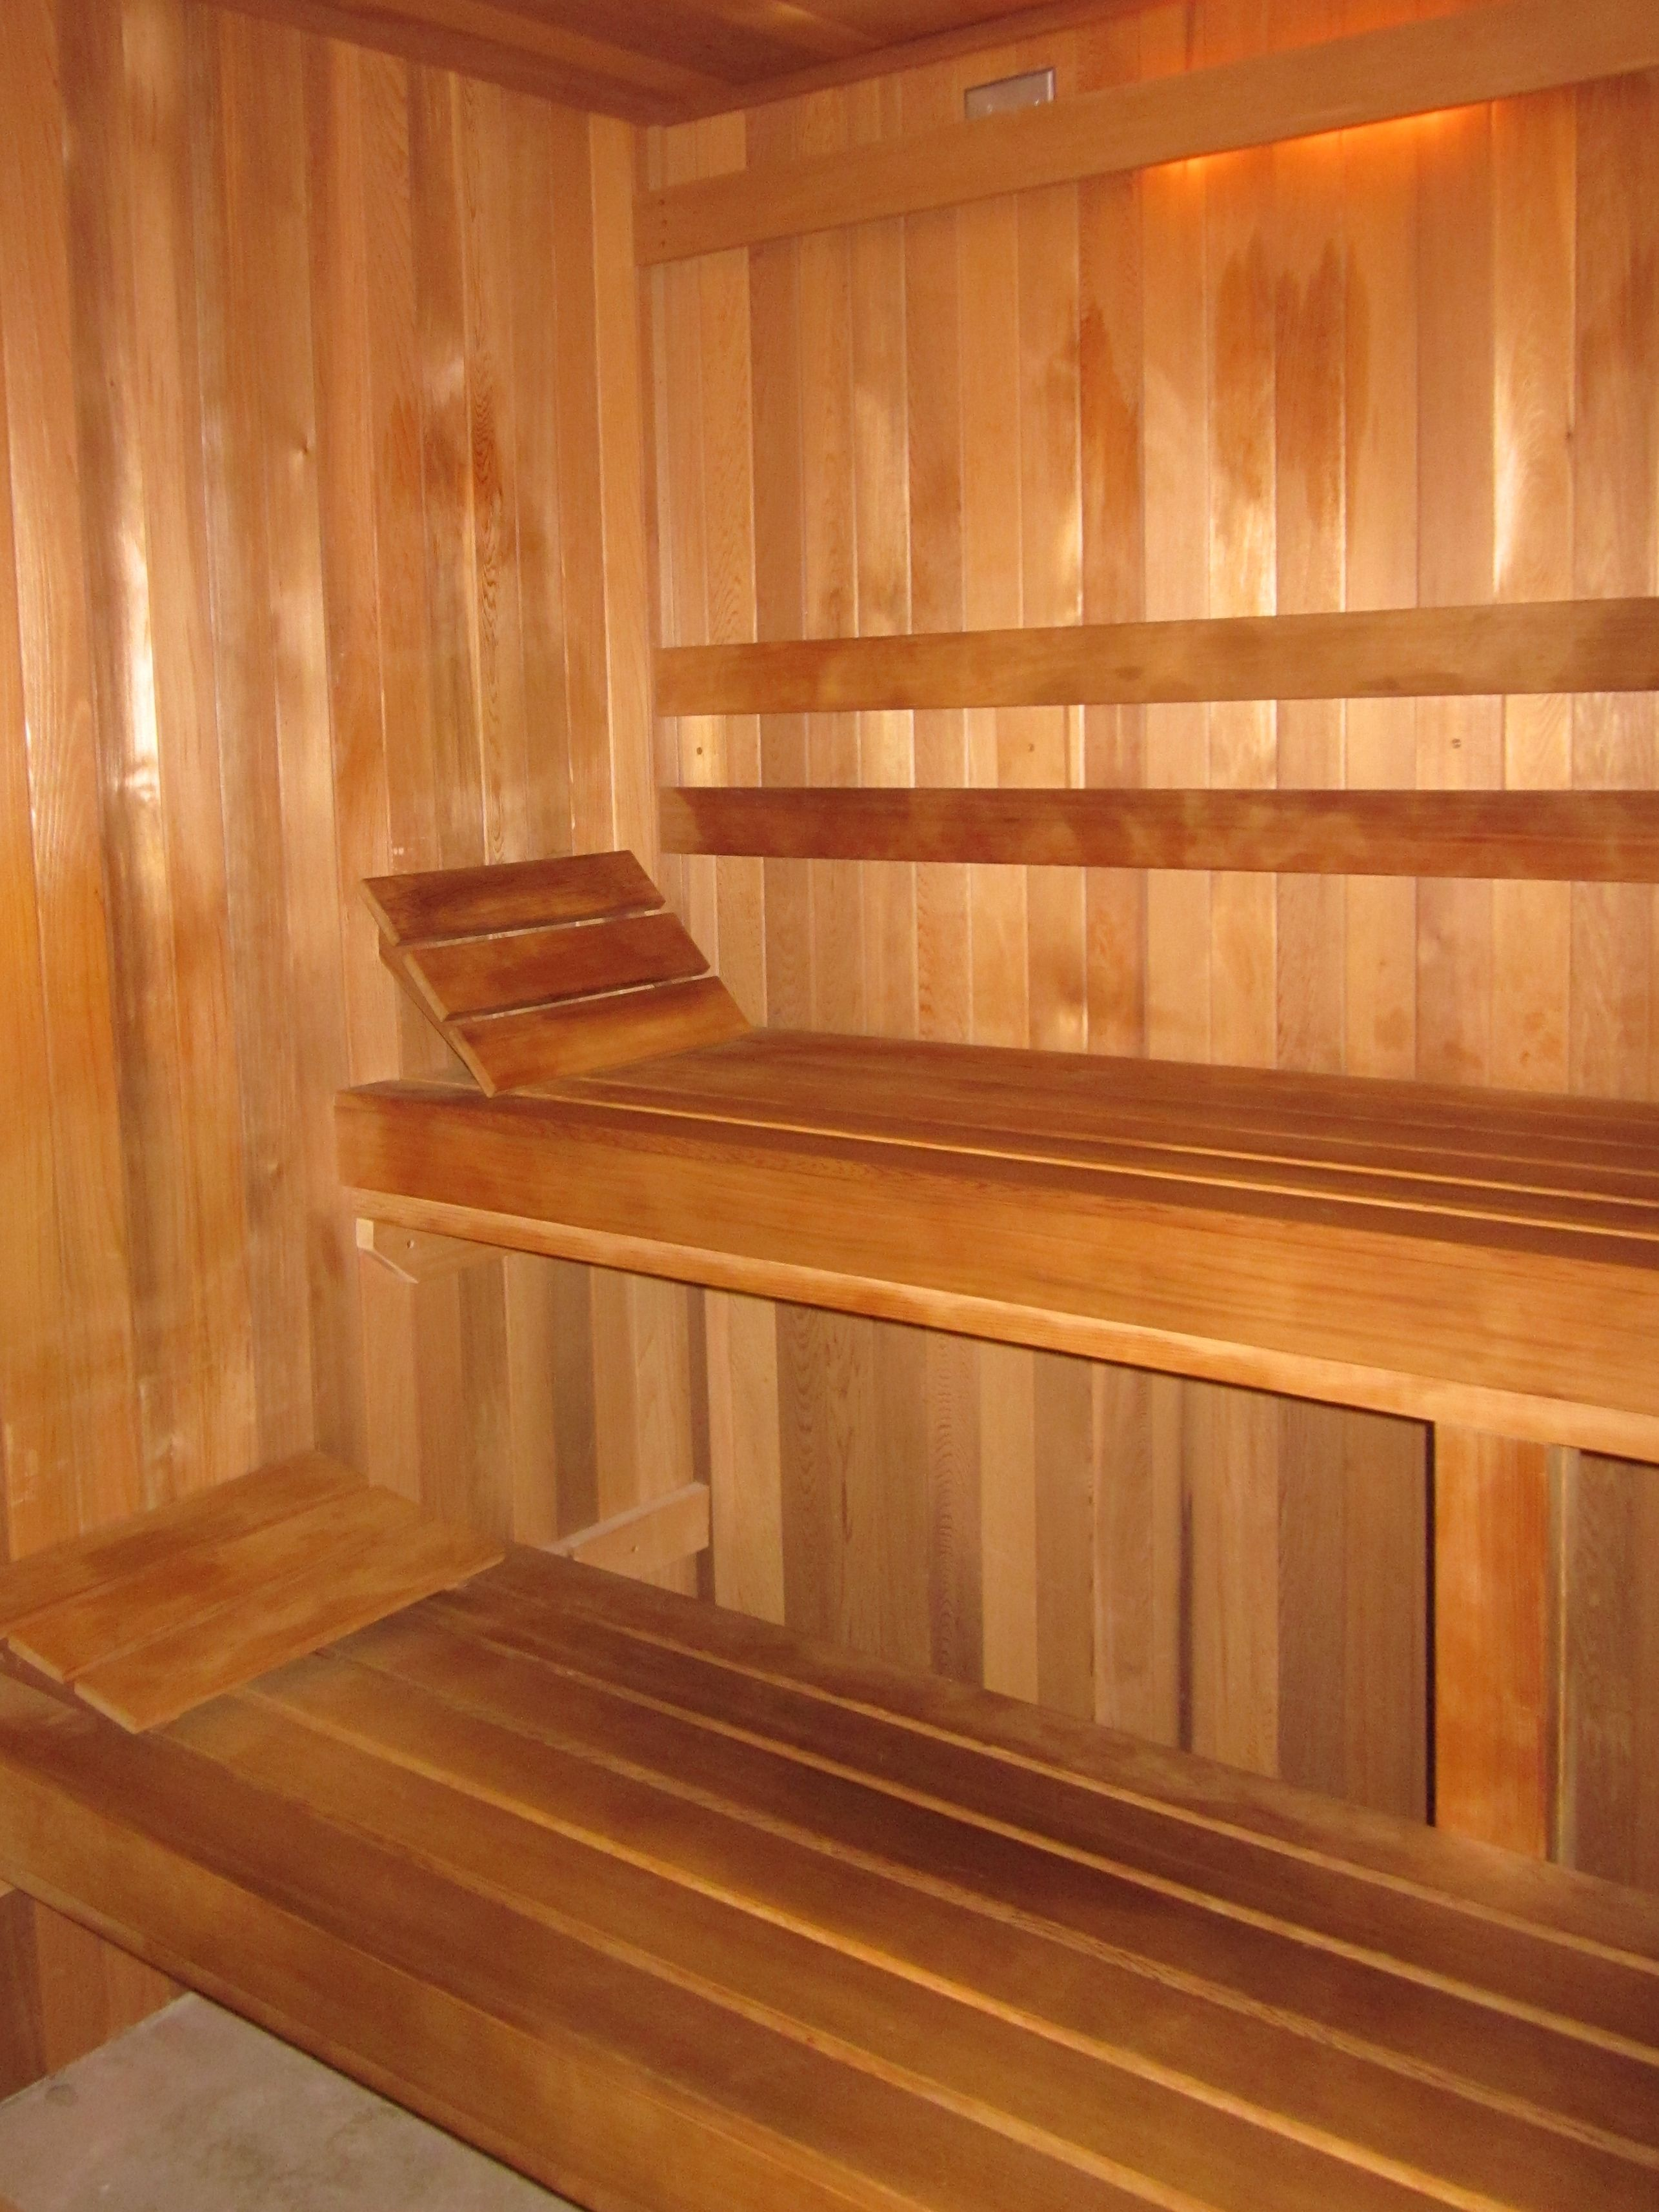 Pin by Family Focus Blog on Family Travel | Pinterest | Saunas, Spa Callaway Gardens House Designs on seminole house, hanover house, palm coast house, united states house, youngstown house, panama city beach house, gulf breeze house, huddleston house, laurel house, sun dog house, laguna beach house, henderson house, nakashima house, holly hill house, north face house,